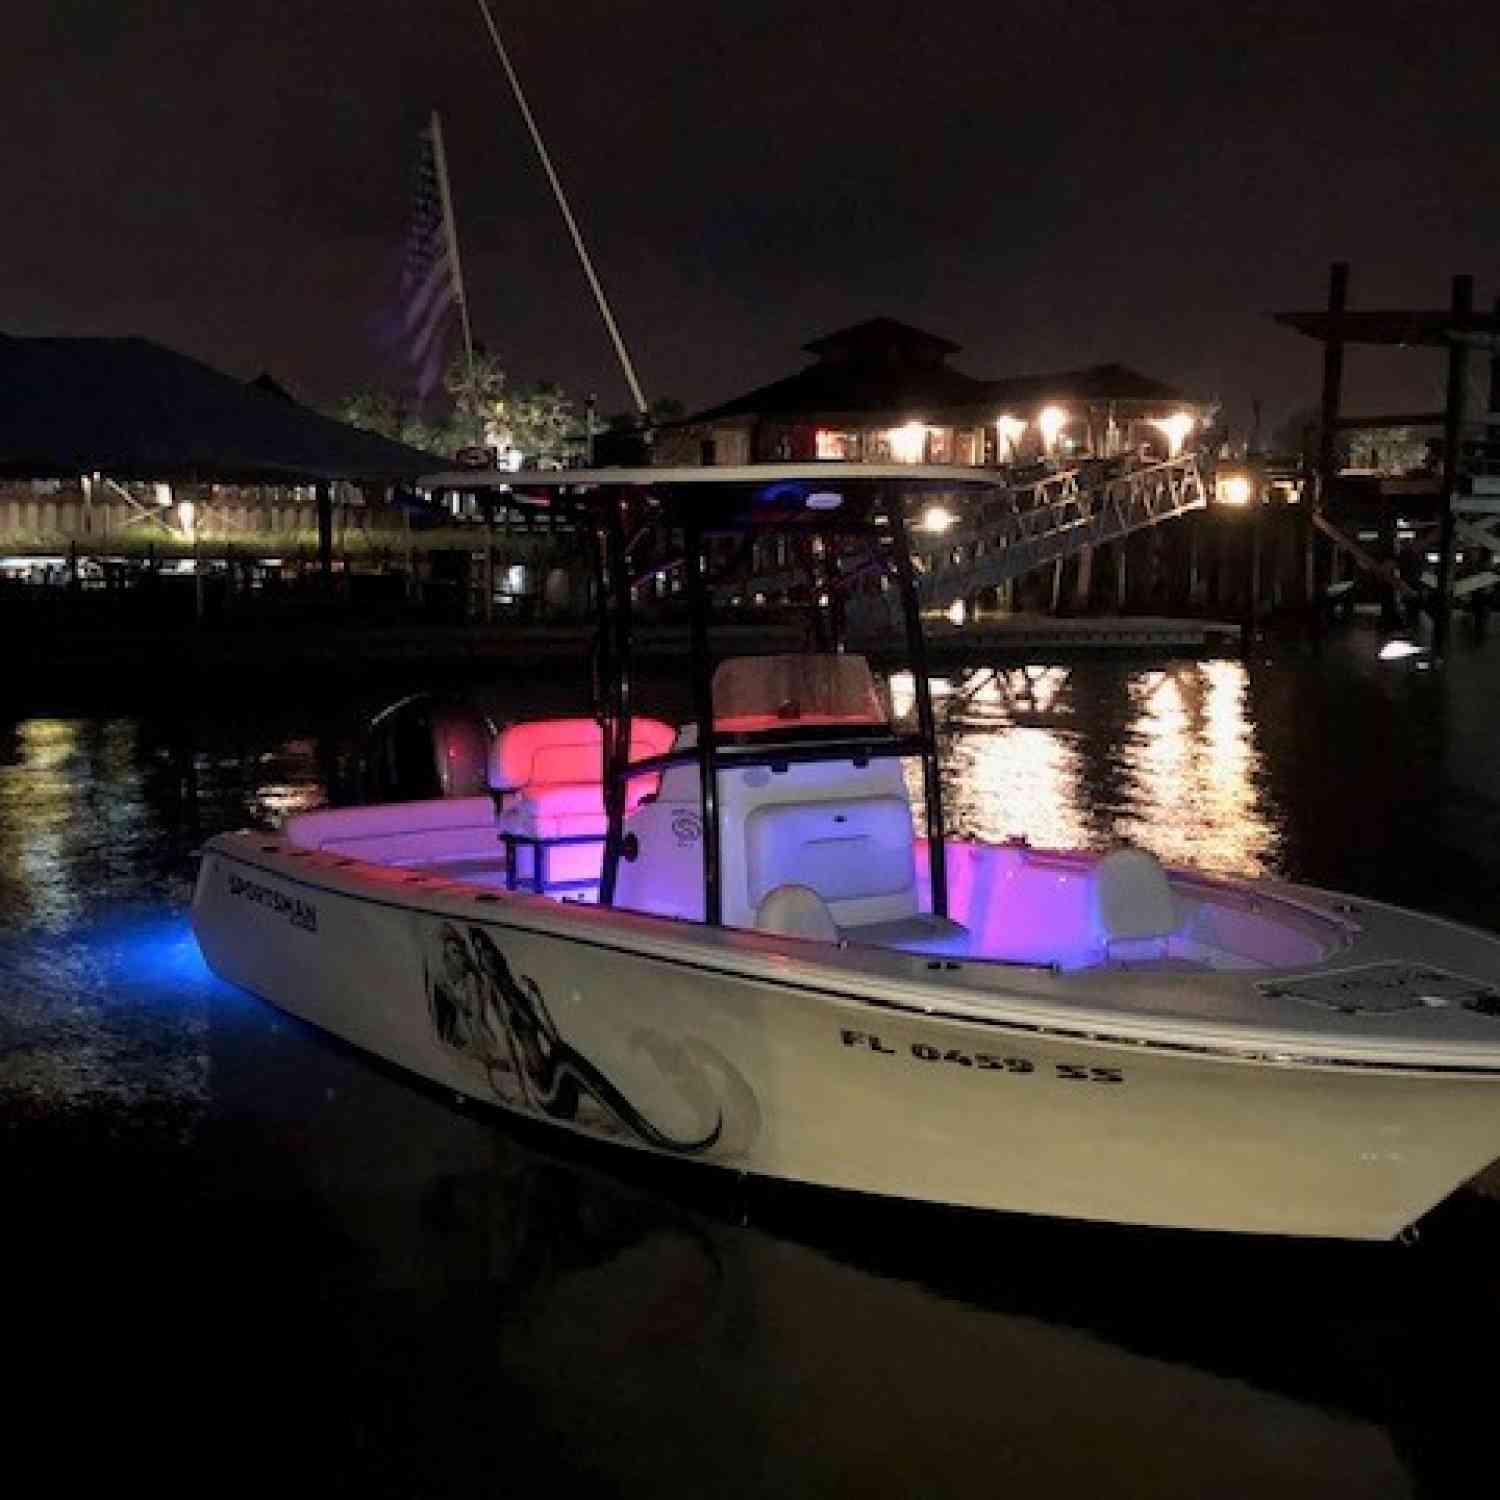 Title: Night Life - On board their Sportsman Heritage 211 Center Console - Location: St Augustine Fl.. Participating in the Photo Contest #SportsmanDecember2020